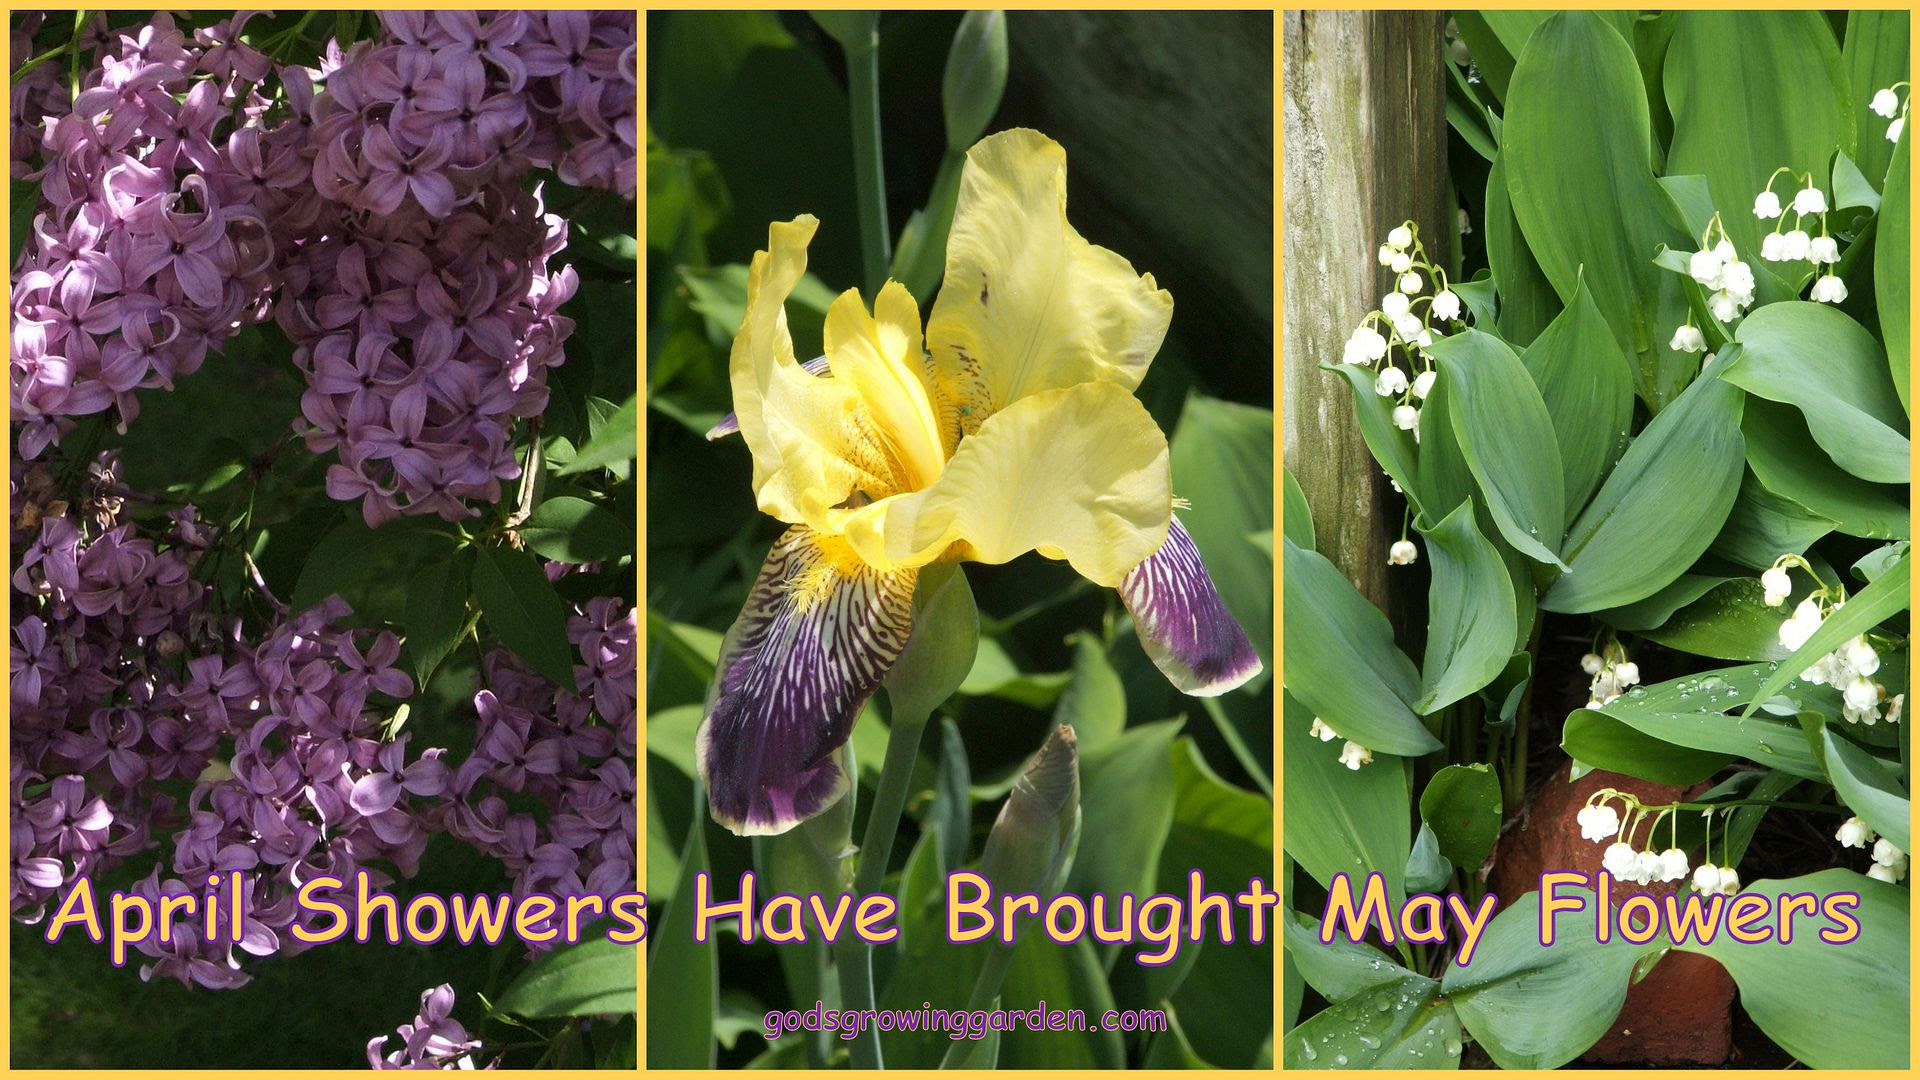 May Flowers by Angie Ouellette-Tower for godsgrowinggarden.com photo BlogStuff_zps90813549.jpg